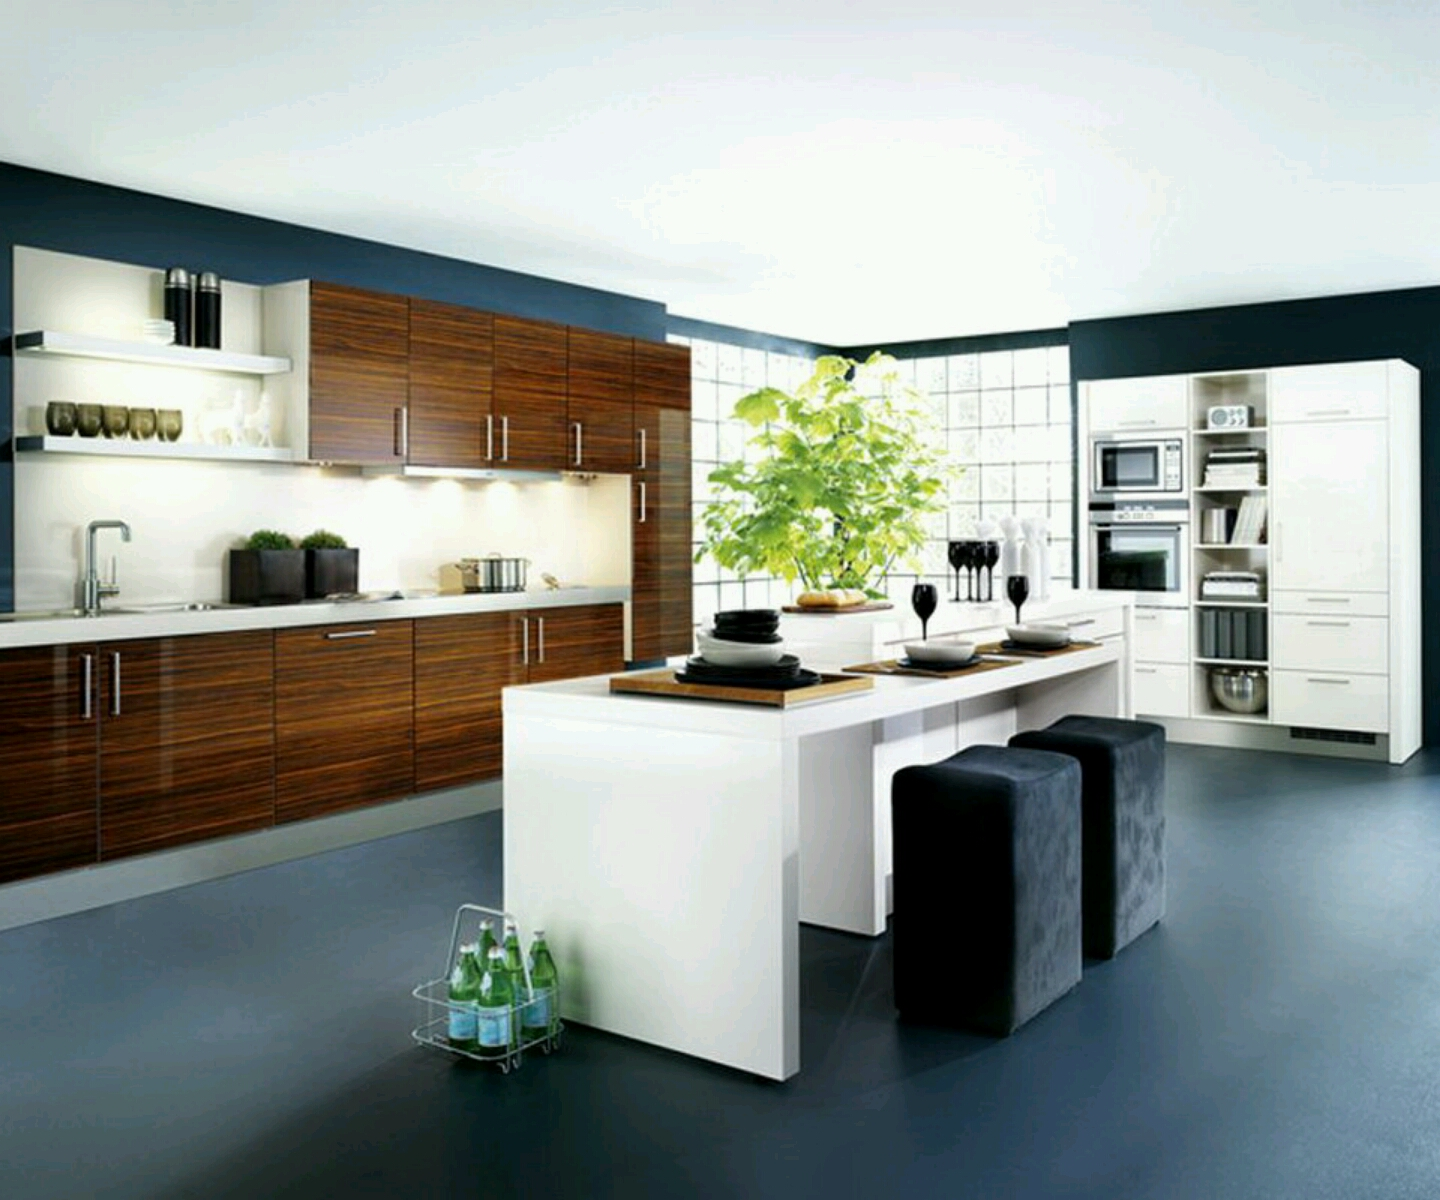 New home designs latest kitchen cabinets designs modern for Modern kitchen decor